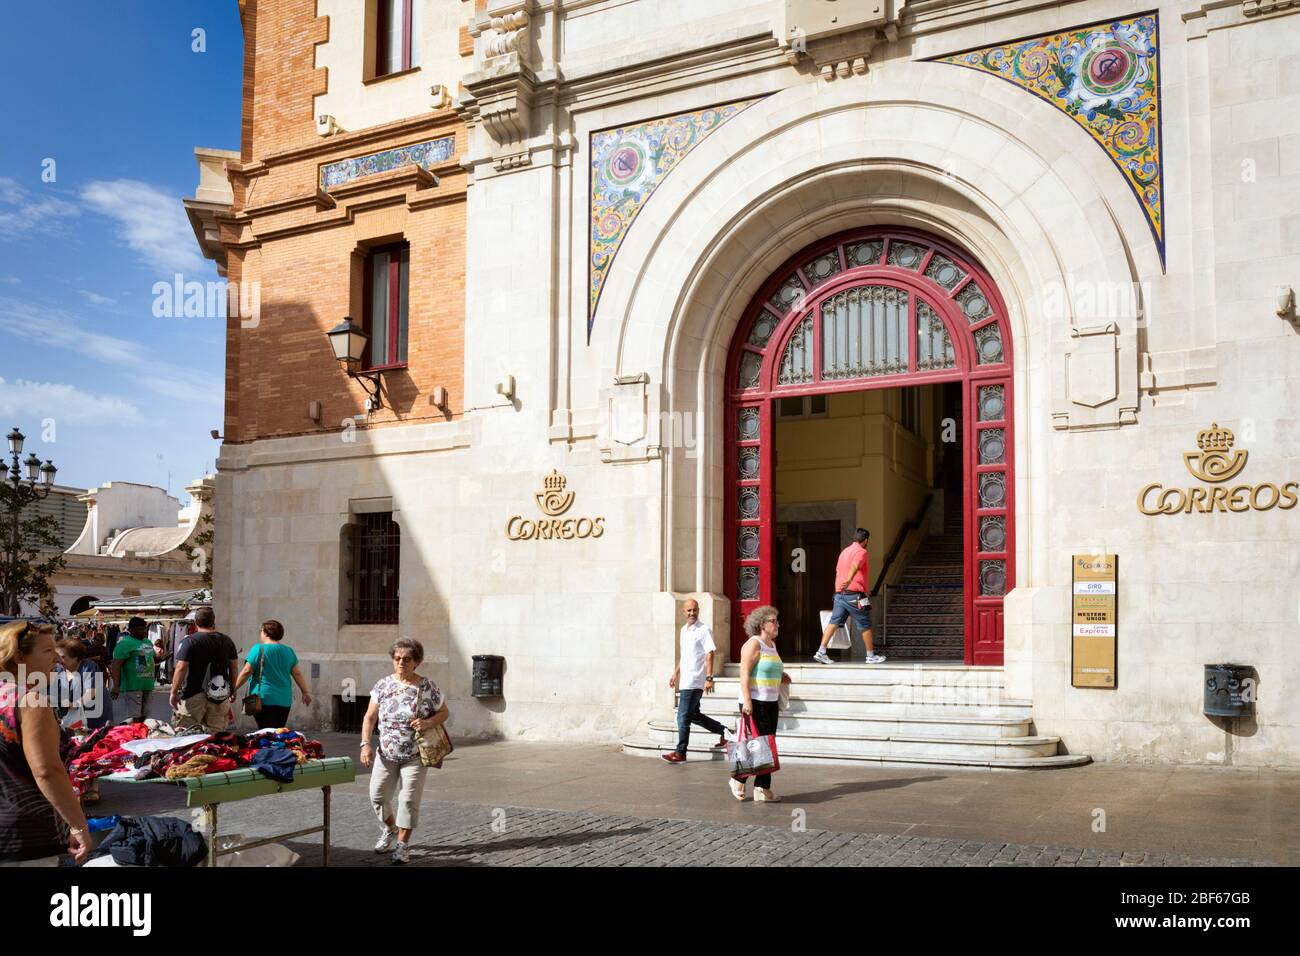 Post office in Plaza de las Flores, Cadiz, Cadiz Province, Costa de la Luz, Andalusia, Spain. Stock Photo